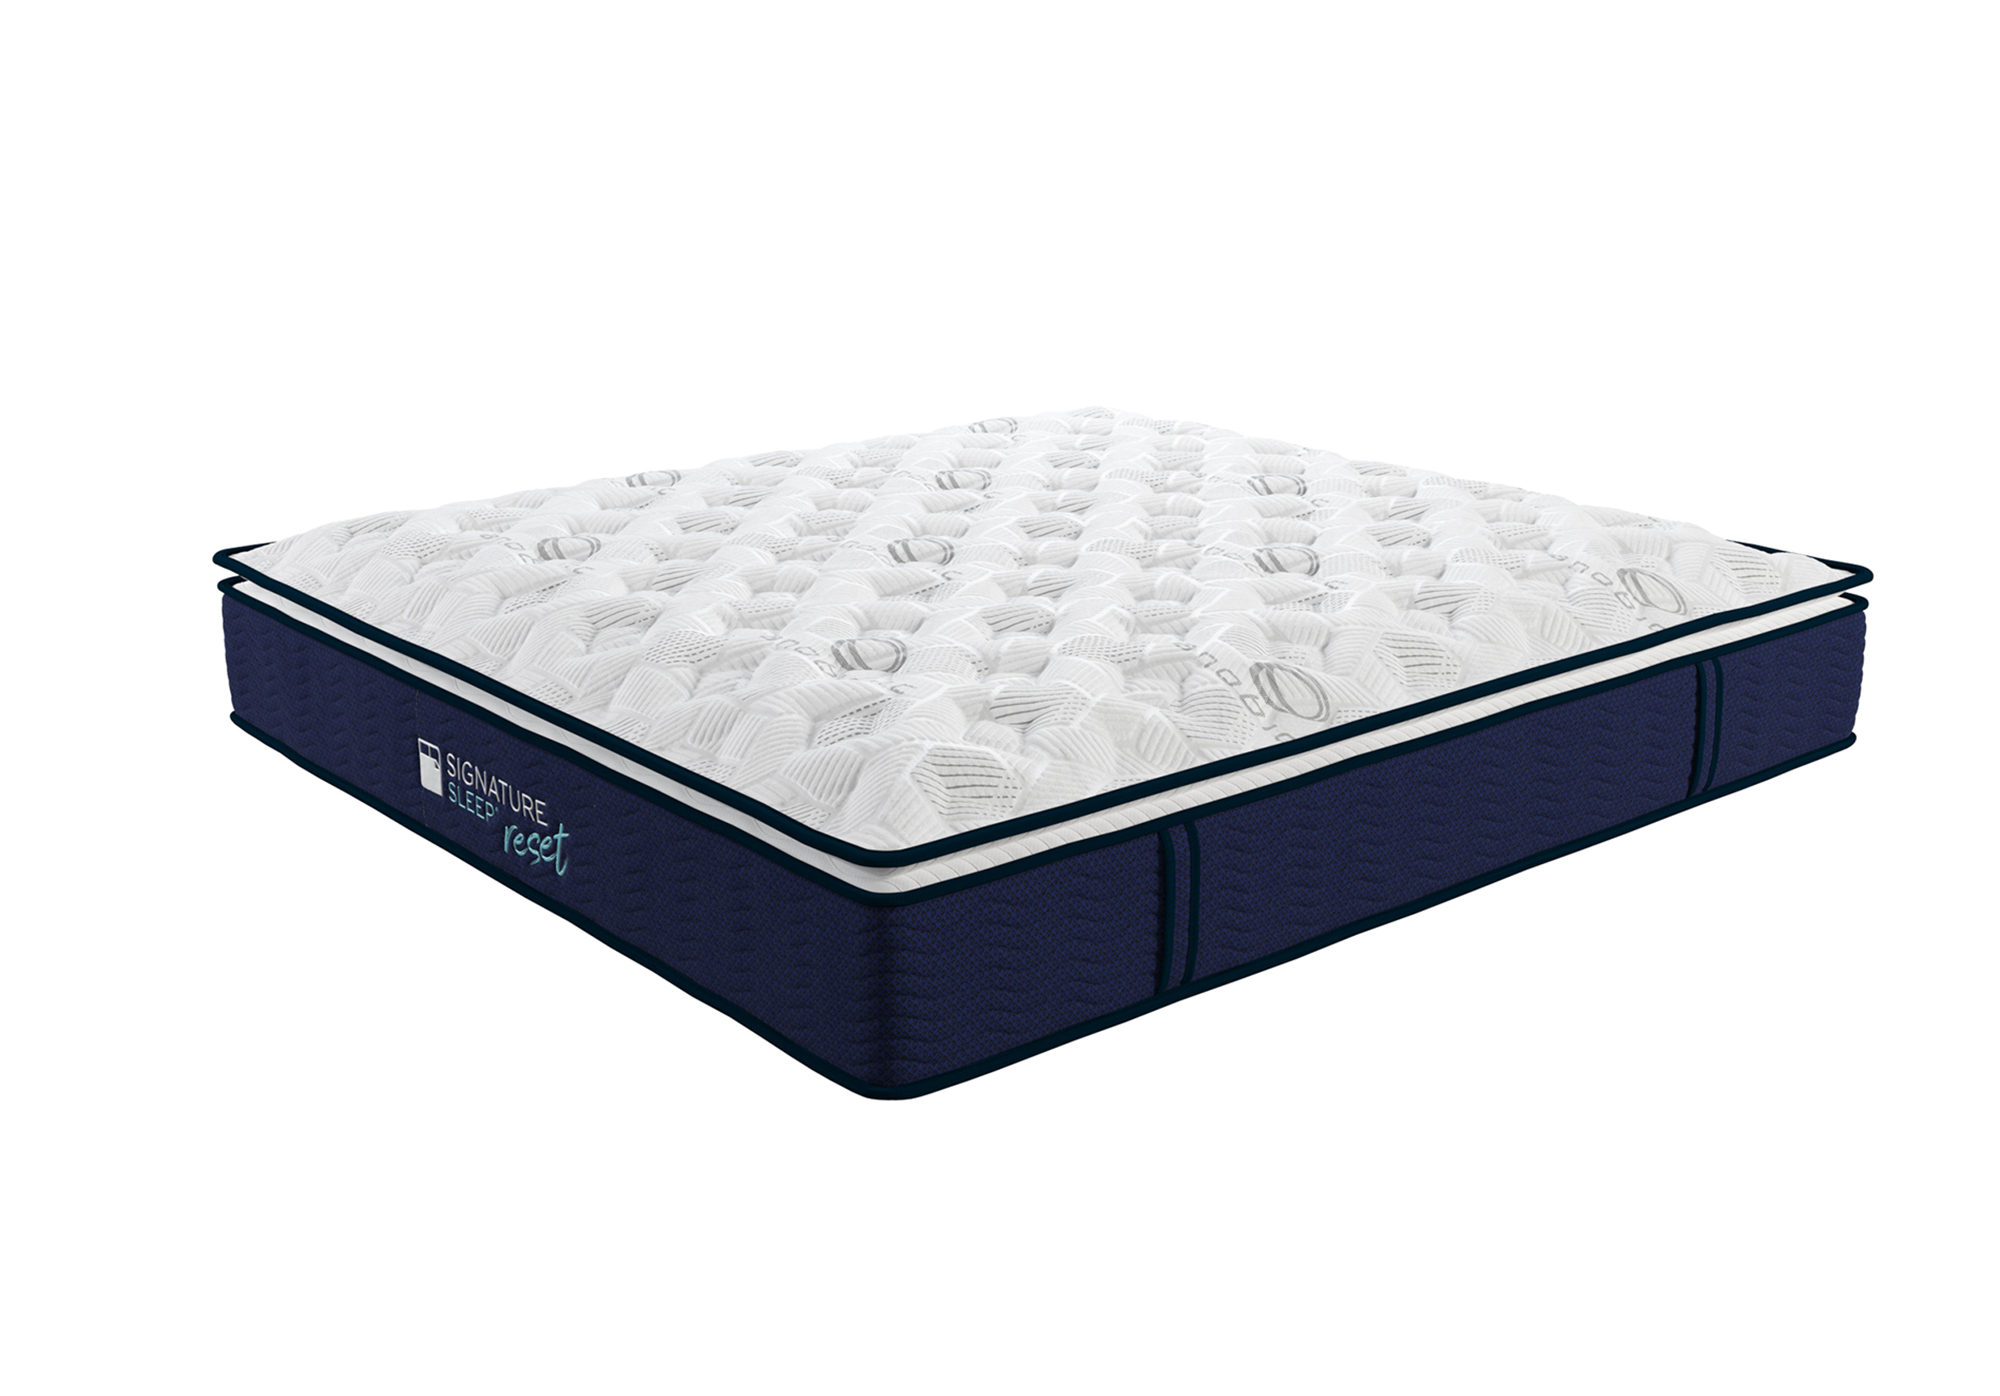 signature-sleep-nanobionic-reset-mattress